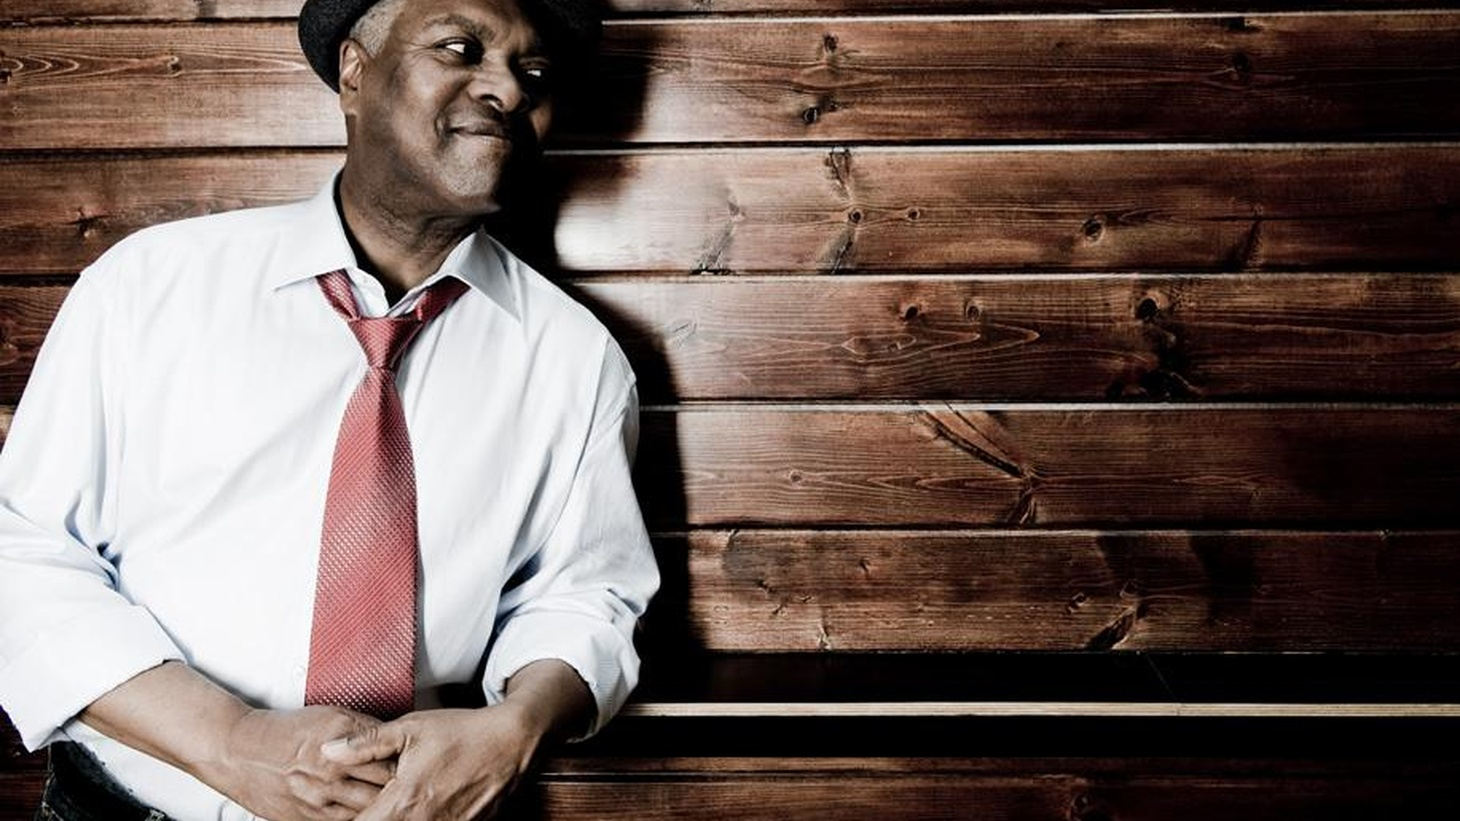 ...from Potato Hole.   Stax house band leader Booker T Jones, who's worked as a producer, arranger and multi-instrumentalist on countless recordings, has just released his first album since 1978...